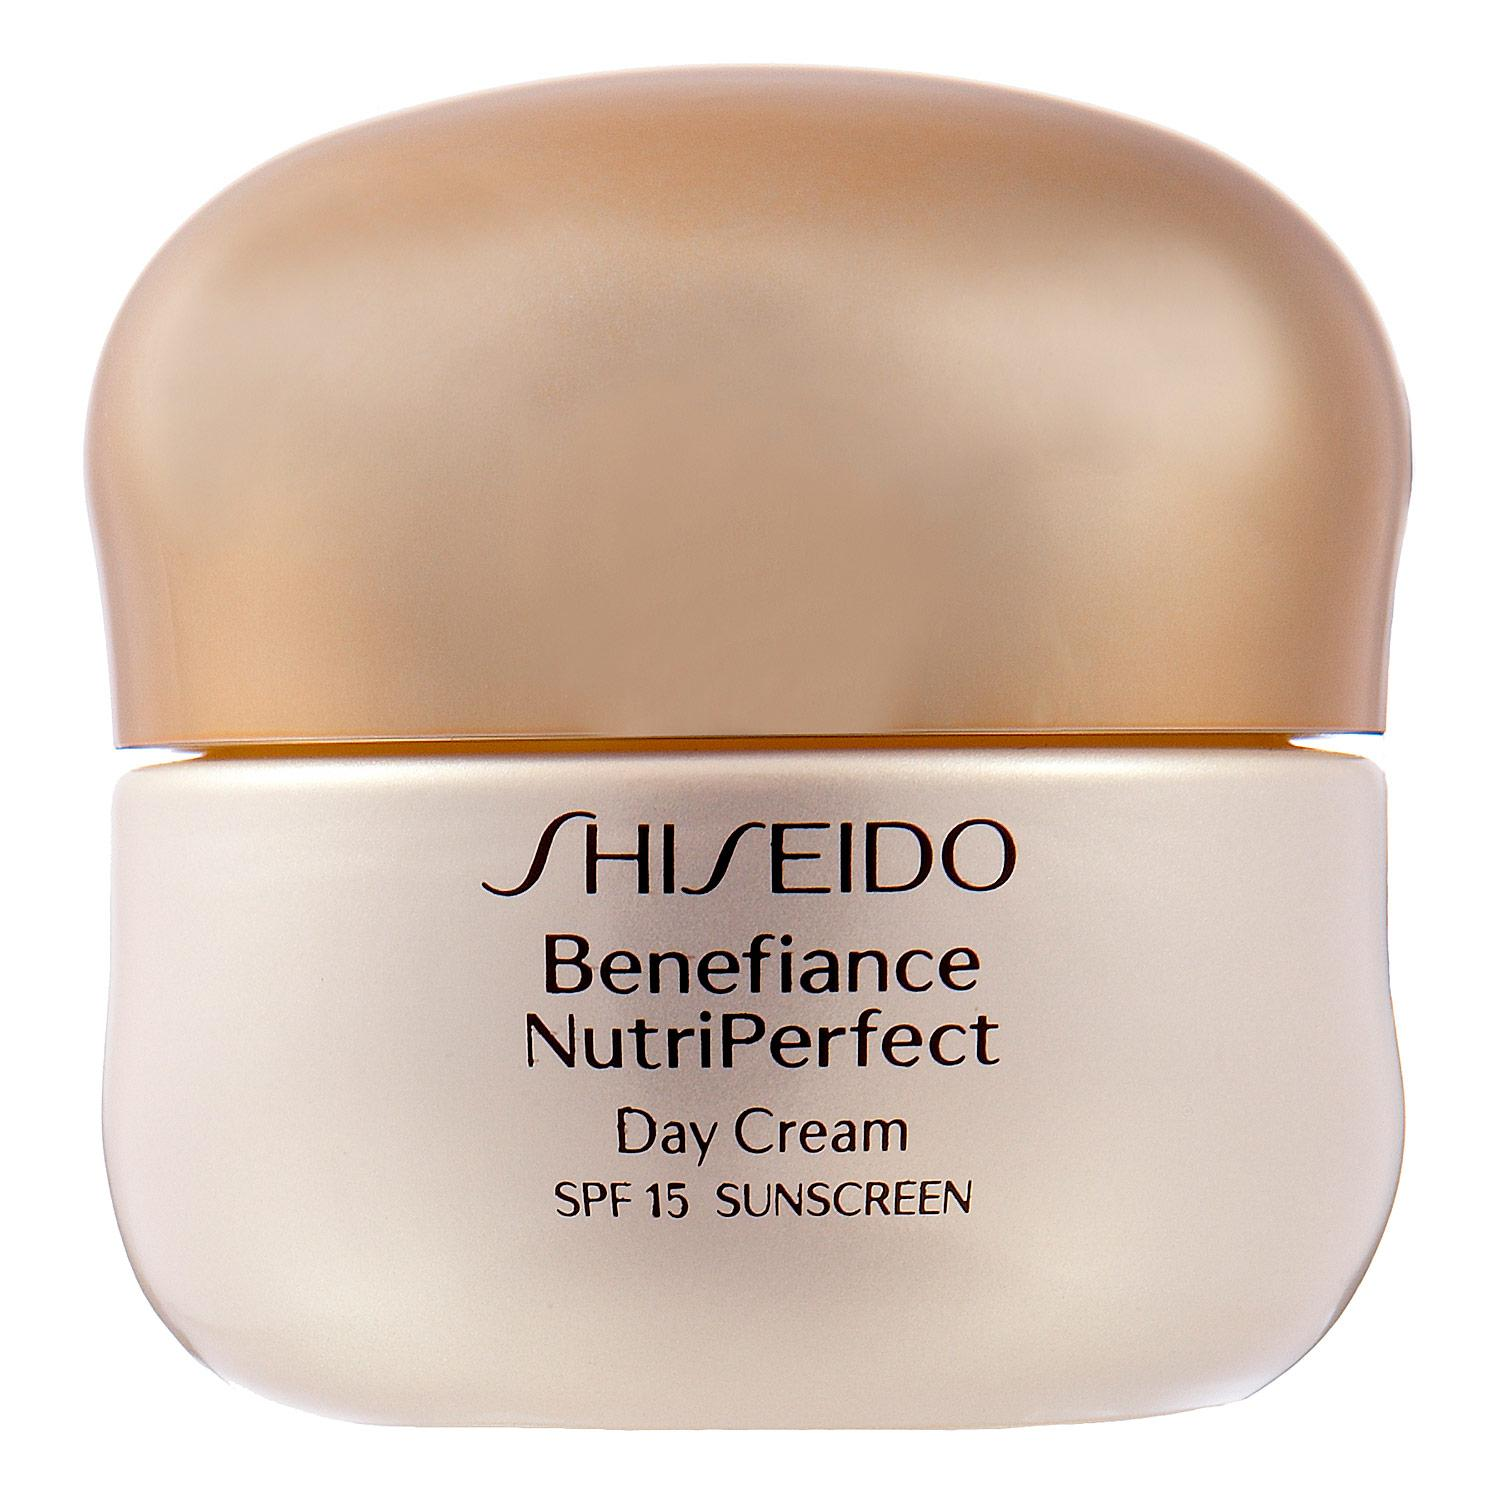 Benefiance NutriPerfect Day Cream SPF 15